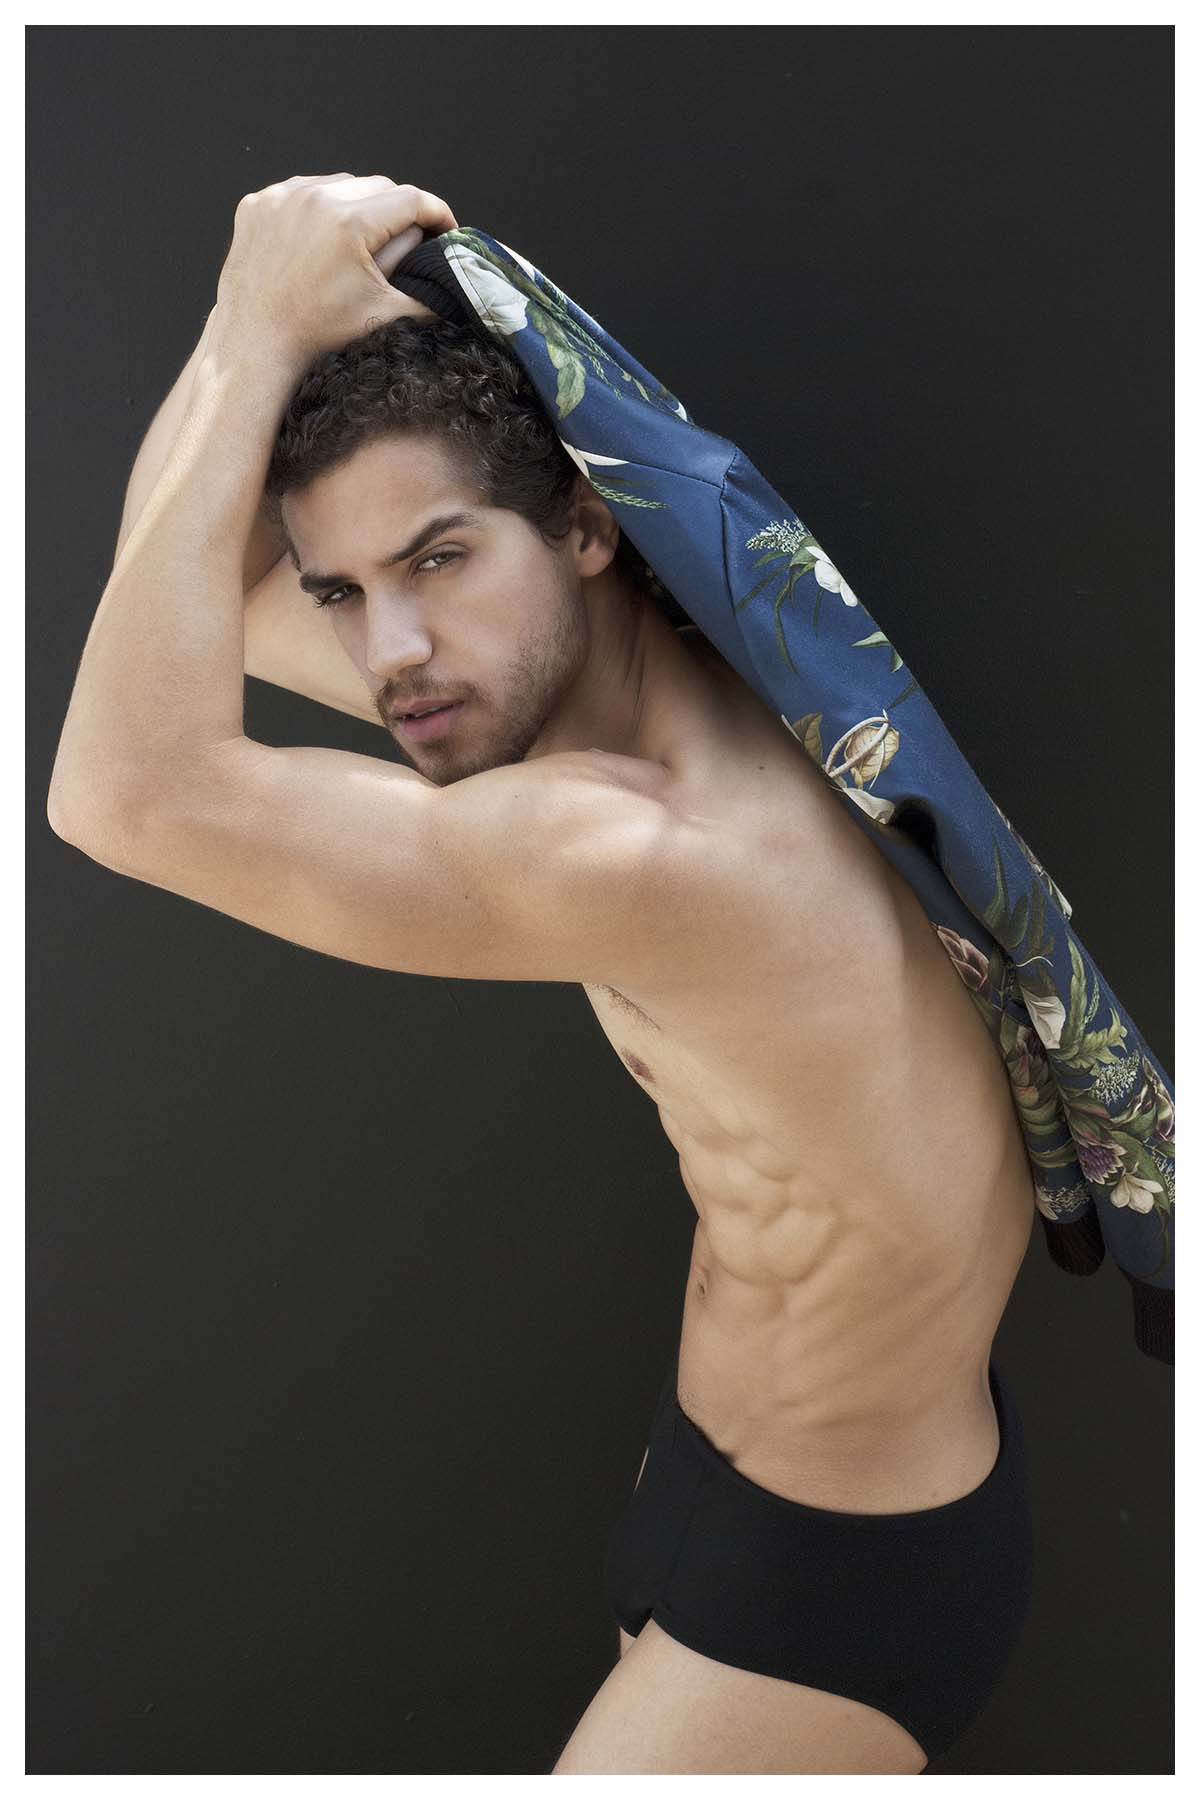 Marlon Almeida by Rodrigo Moura for Brazilian Male Model